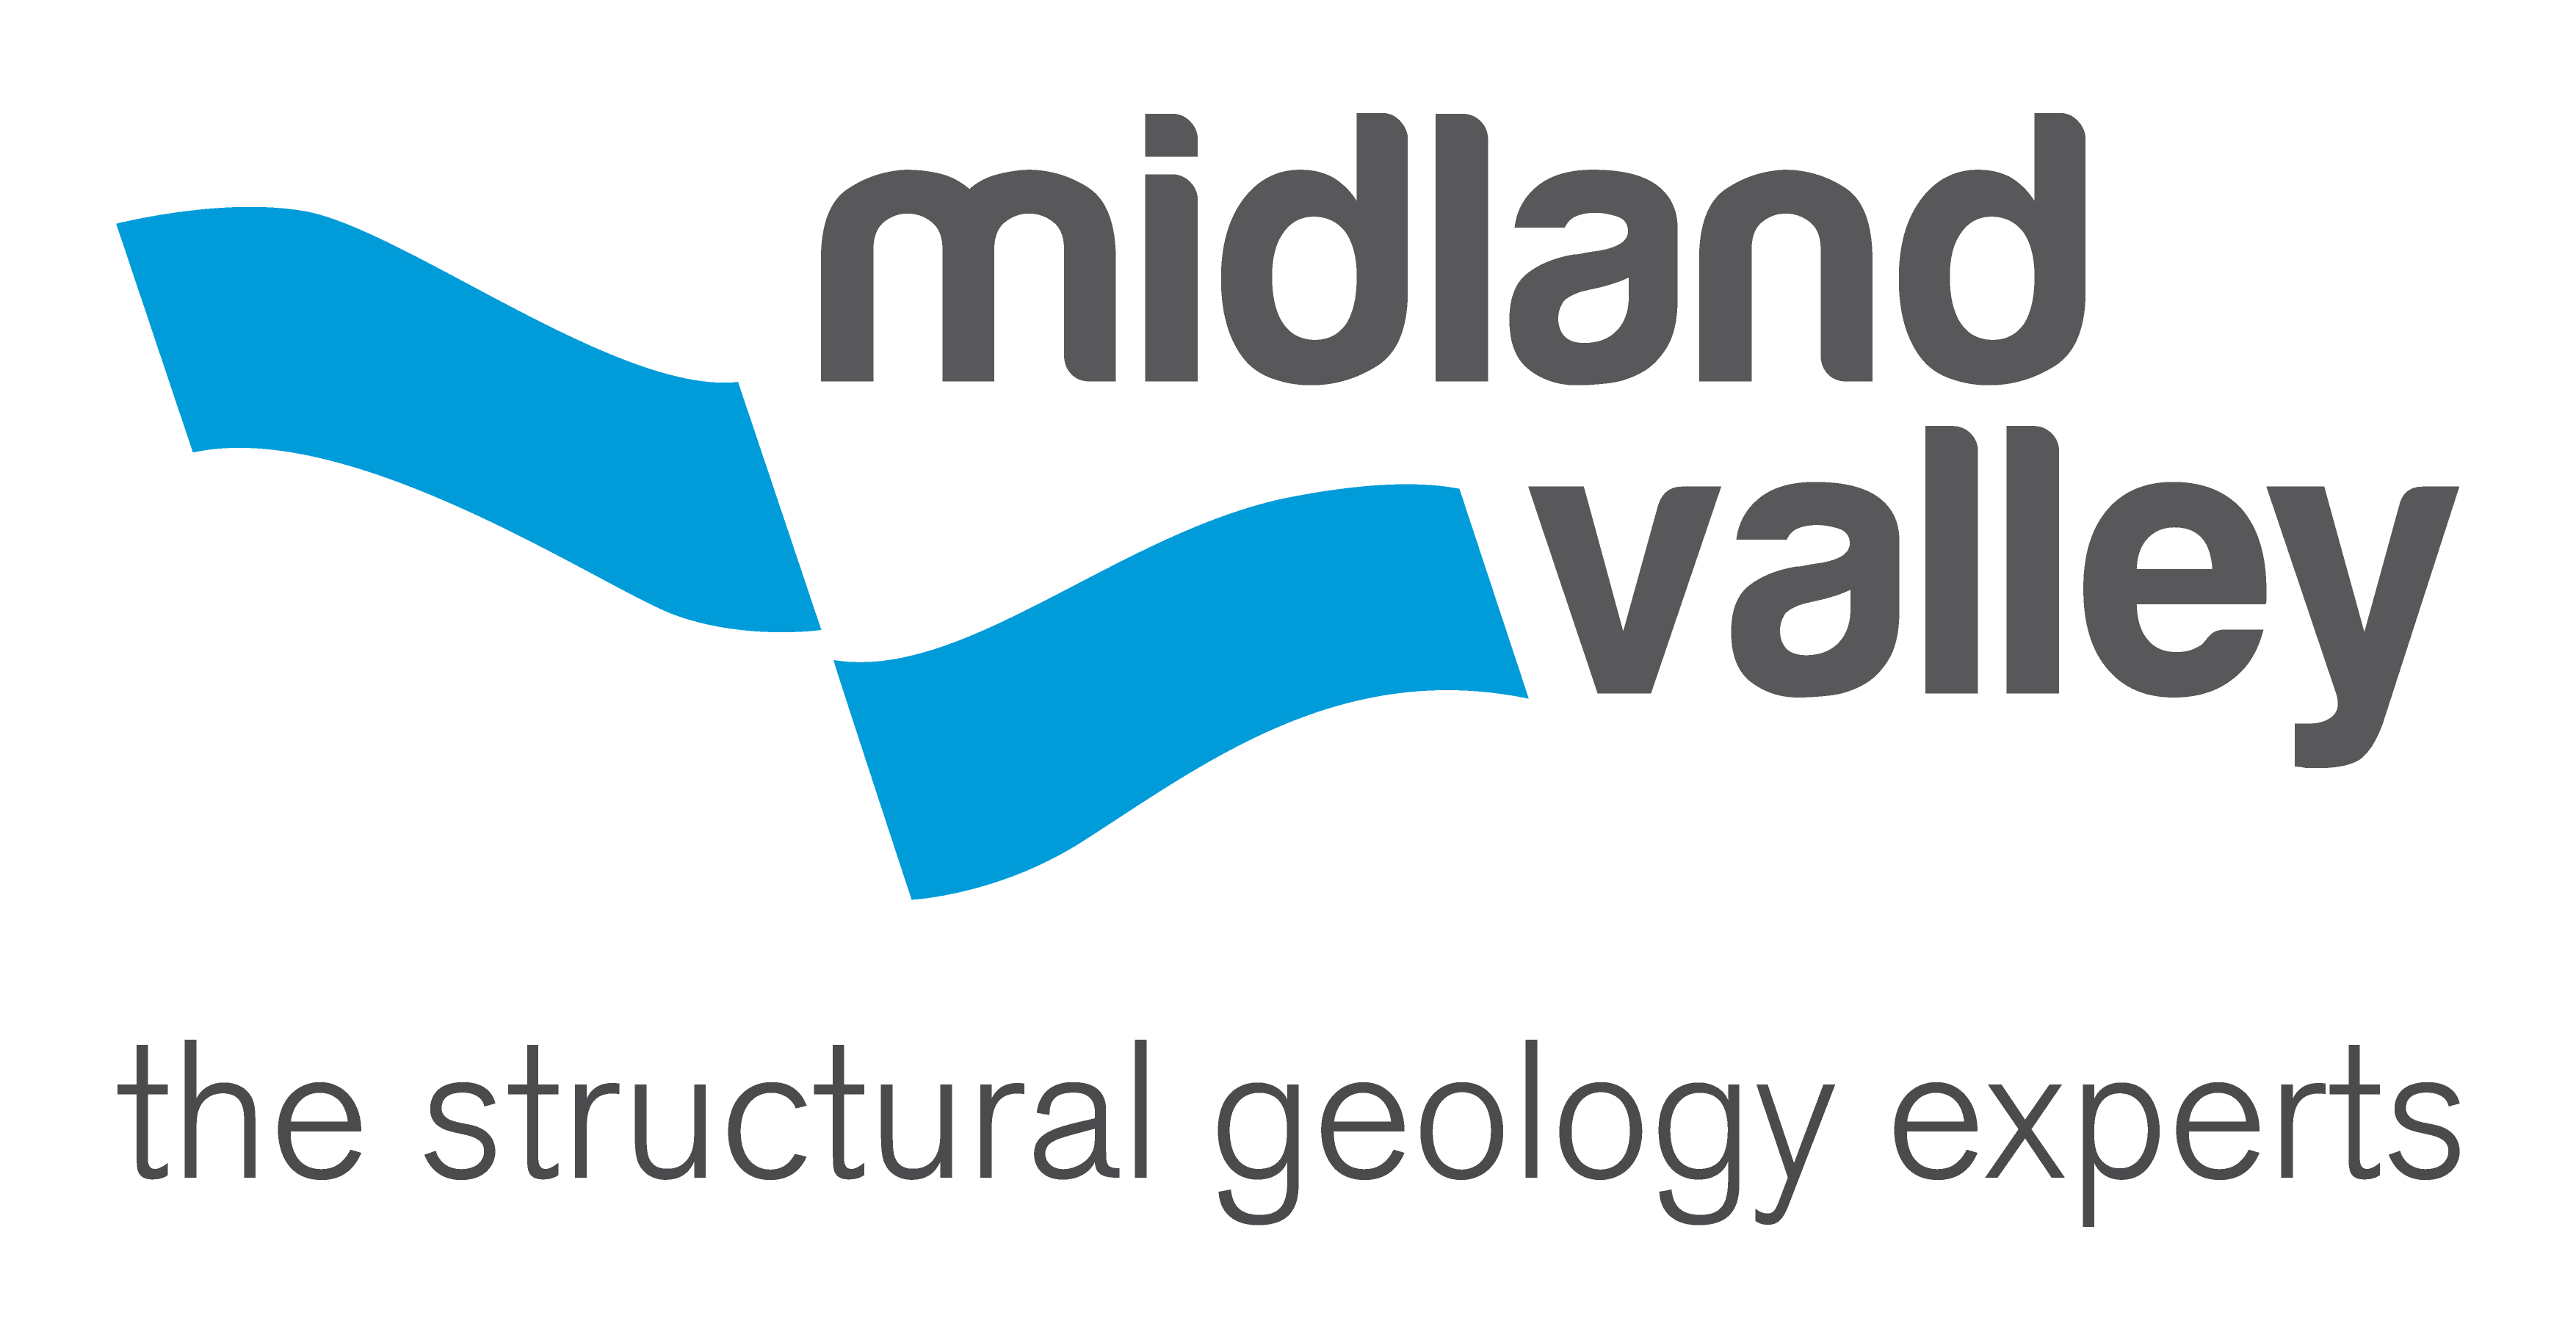 Midland Valley logo